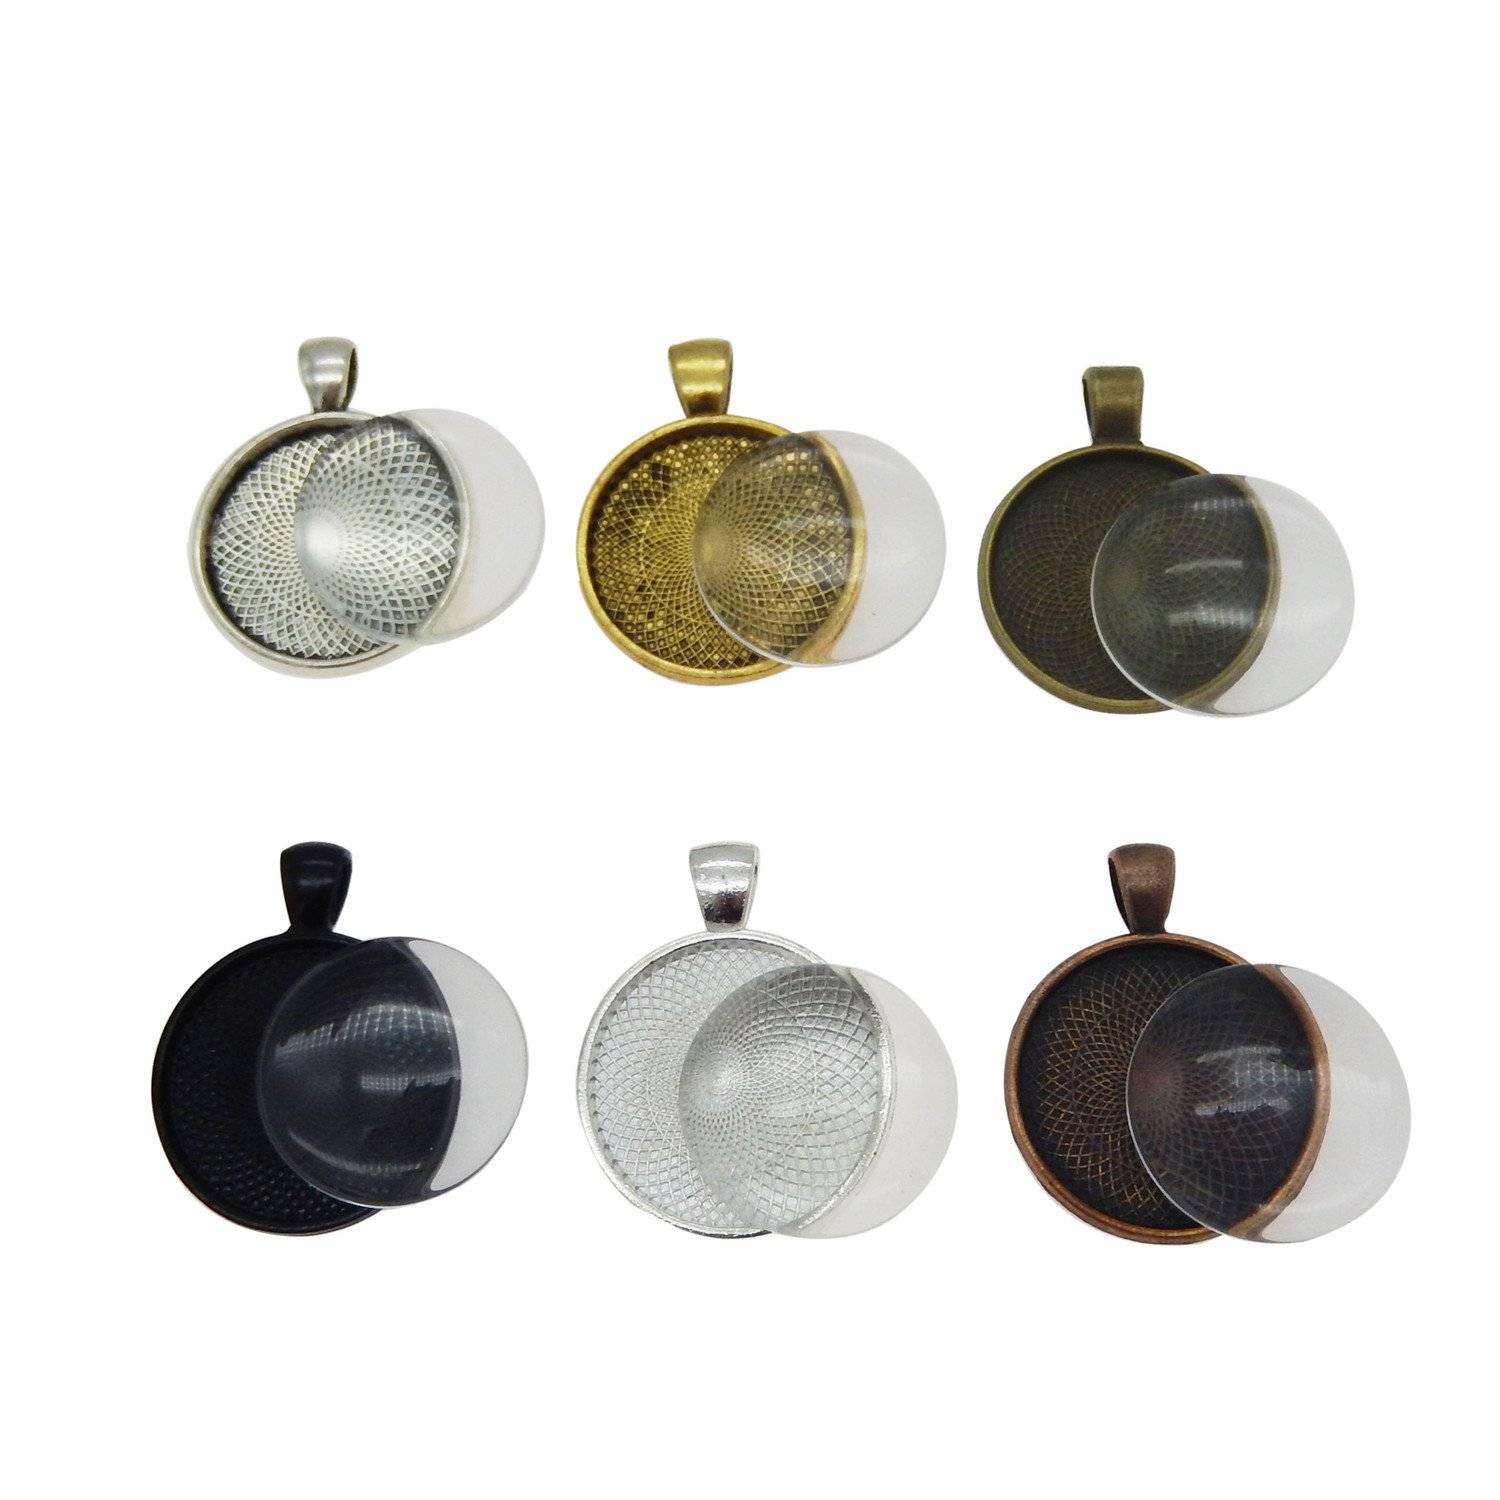 GraceAngie 30 pieces Pendant Trays Round Bezel with Glass Cabochon Round Clear Dome 25 mm//1 inch Diameter 6 Colors